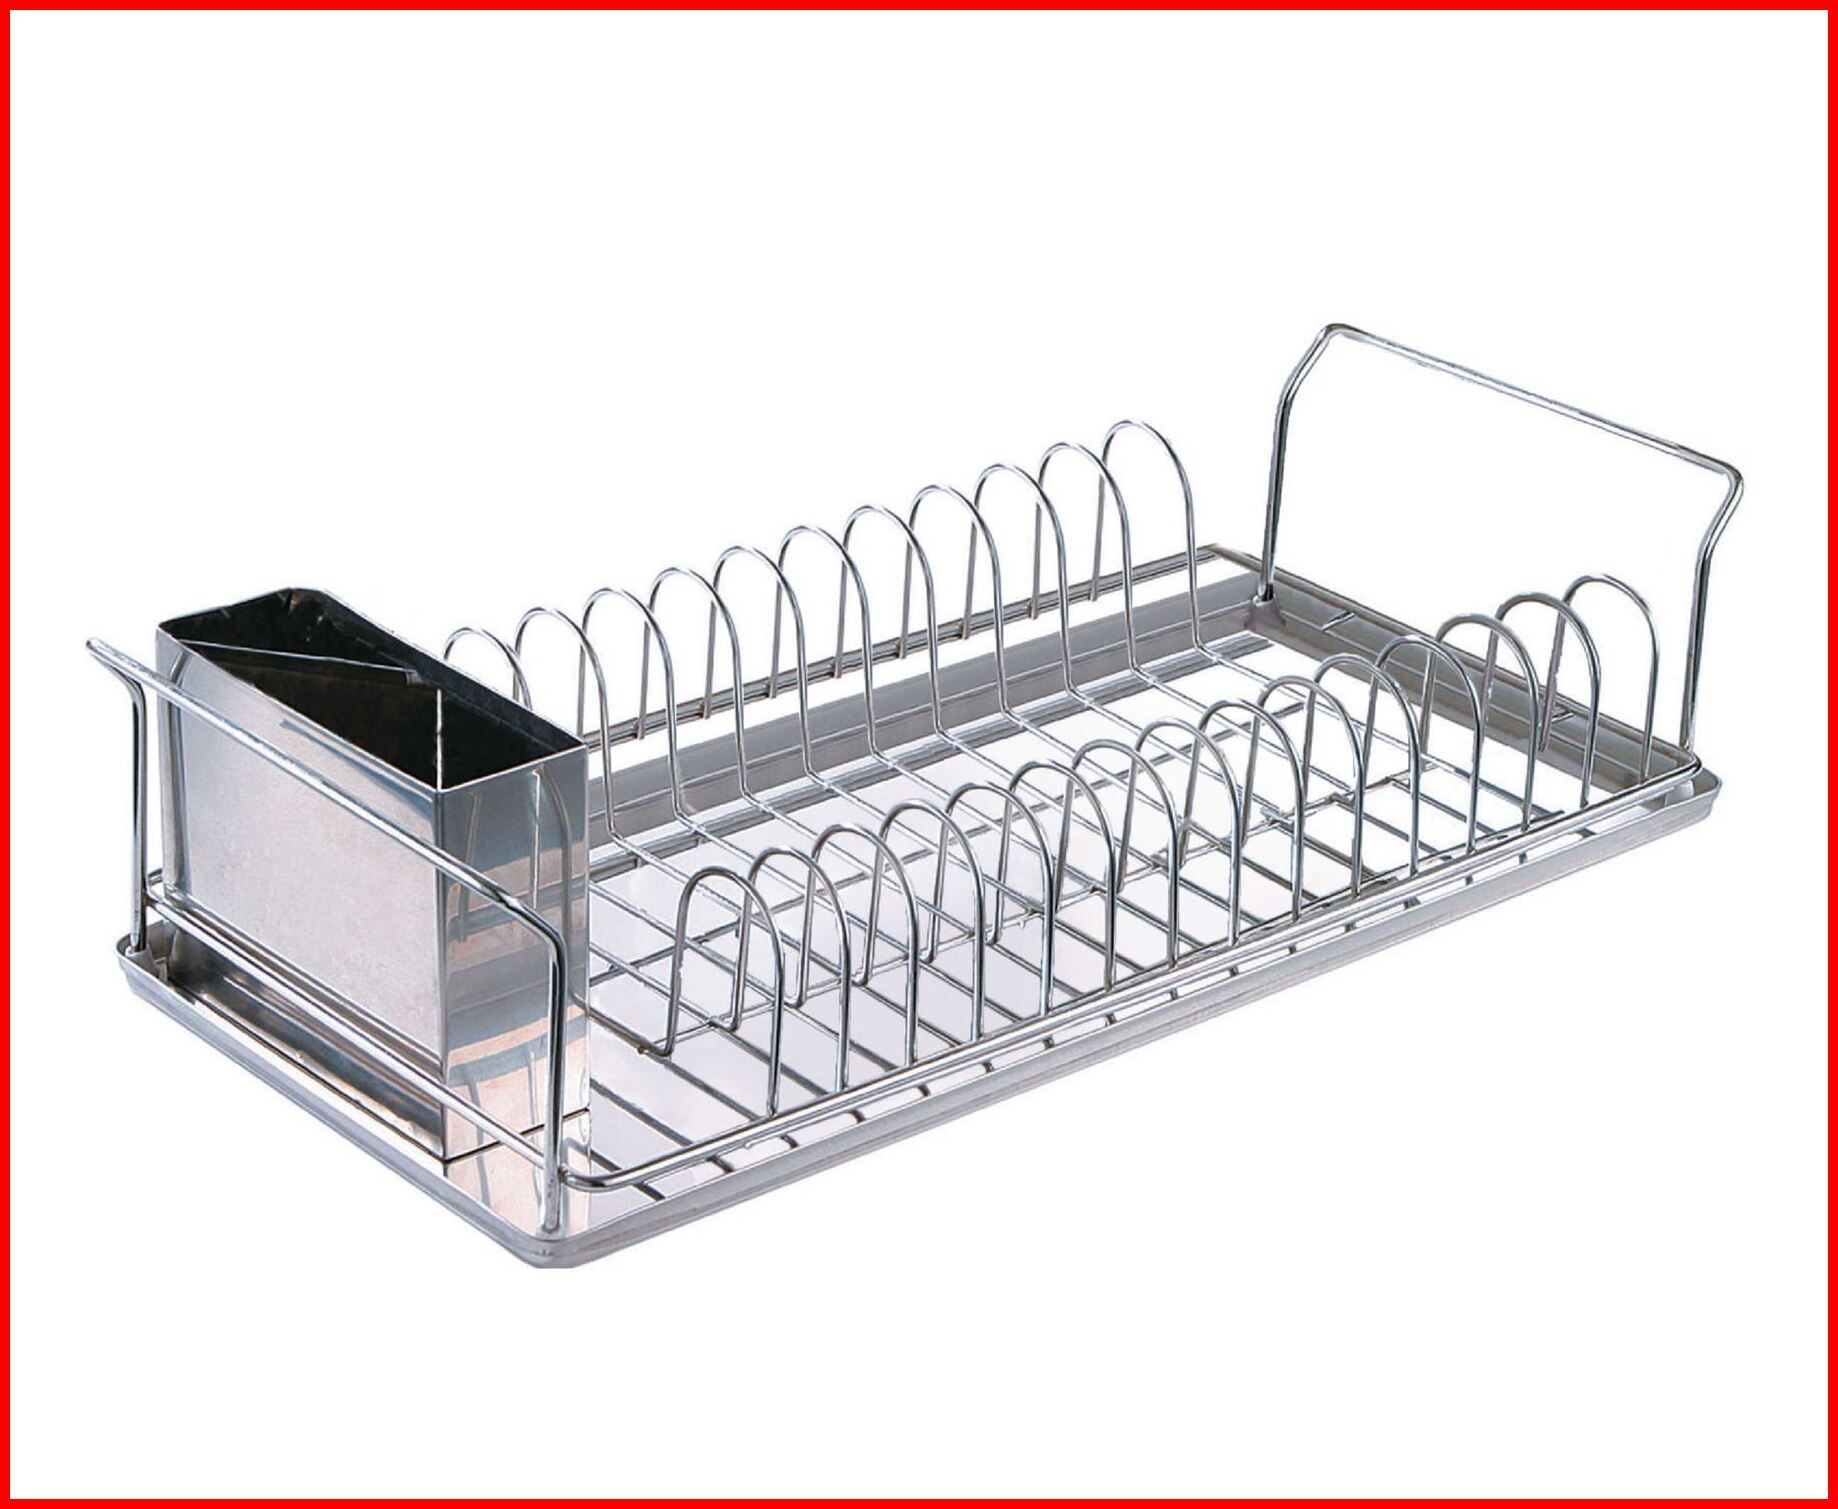 106 Reference Of Chrome Dish Rack With Stainless Steel Tray In 2020 Dish Racks Tray Chrome